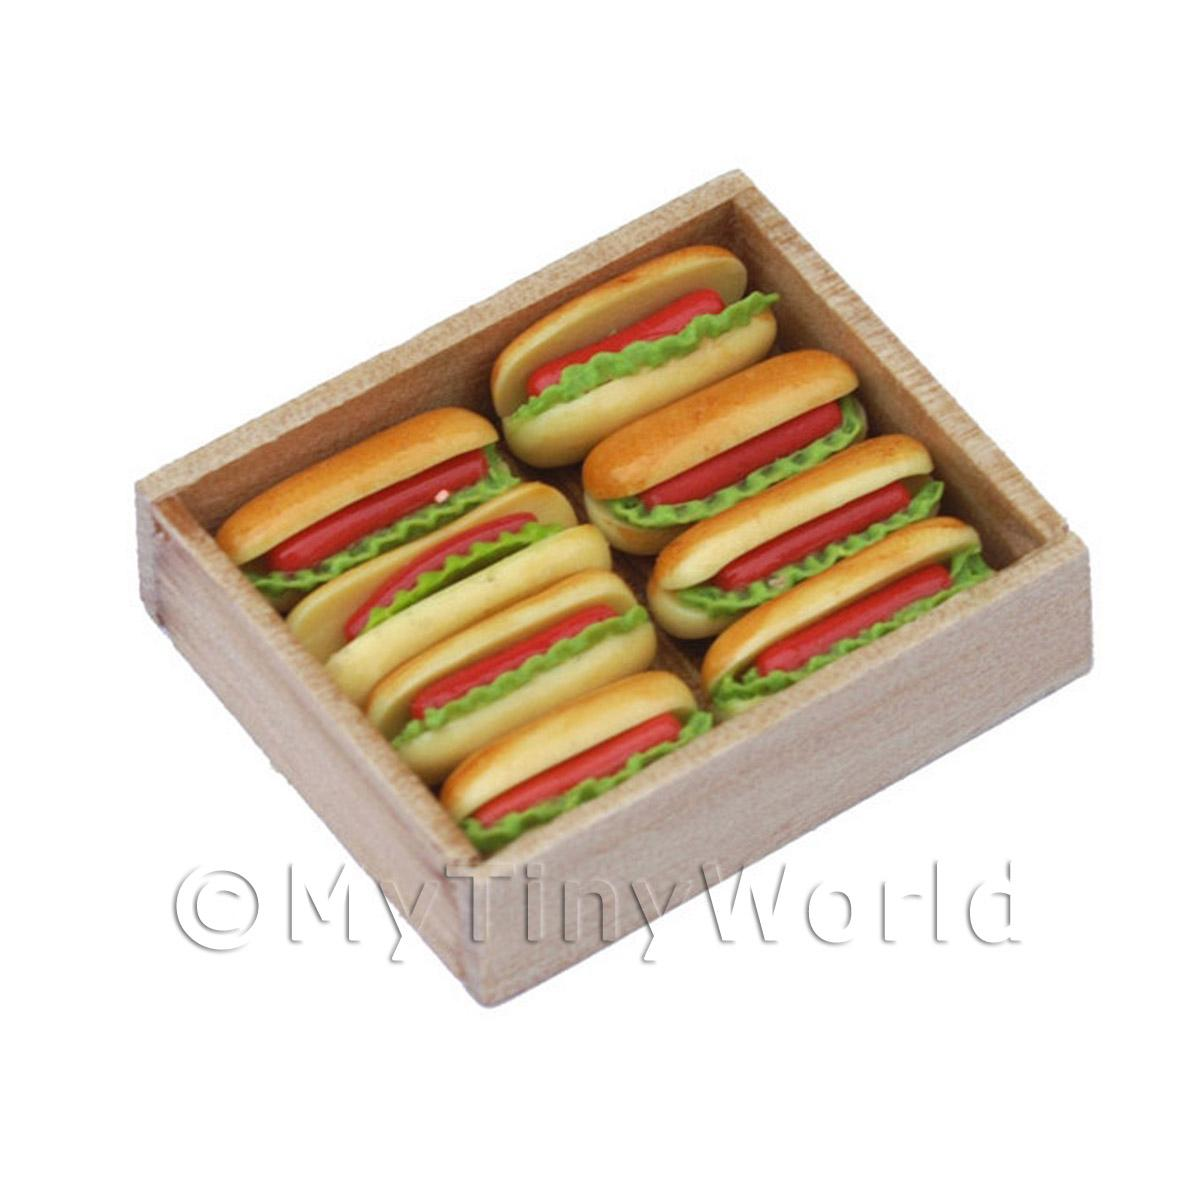 Dolls House Miniature  Jumbo Hot Dogs In a Wooden Bakers Tray